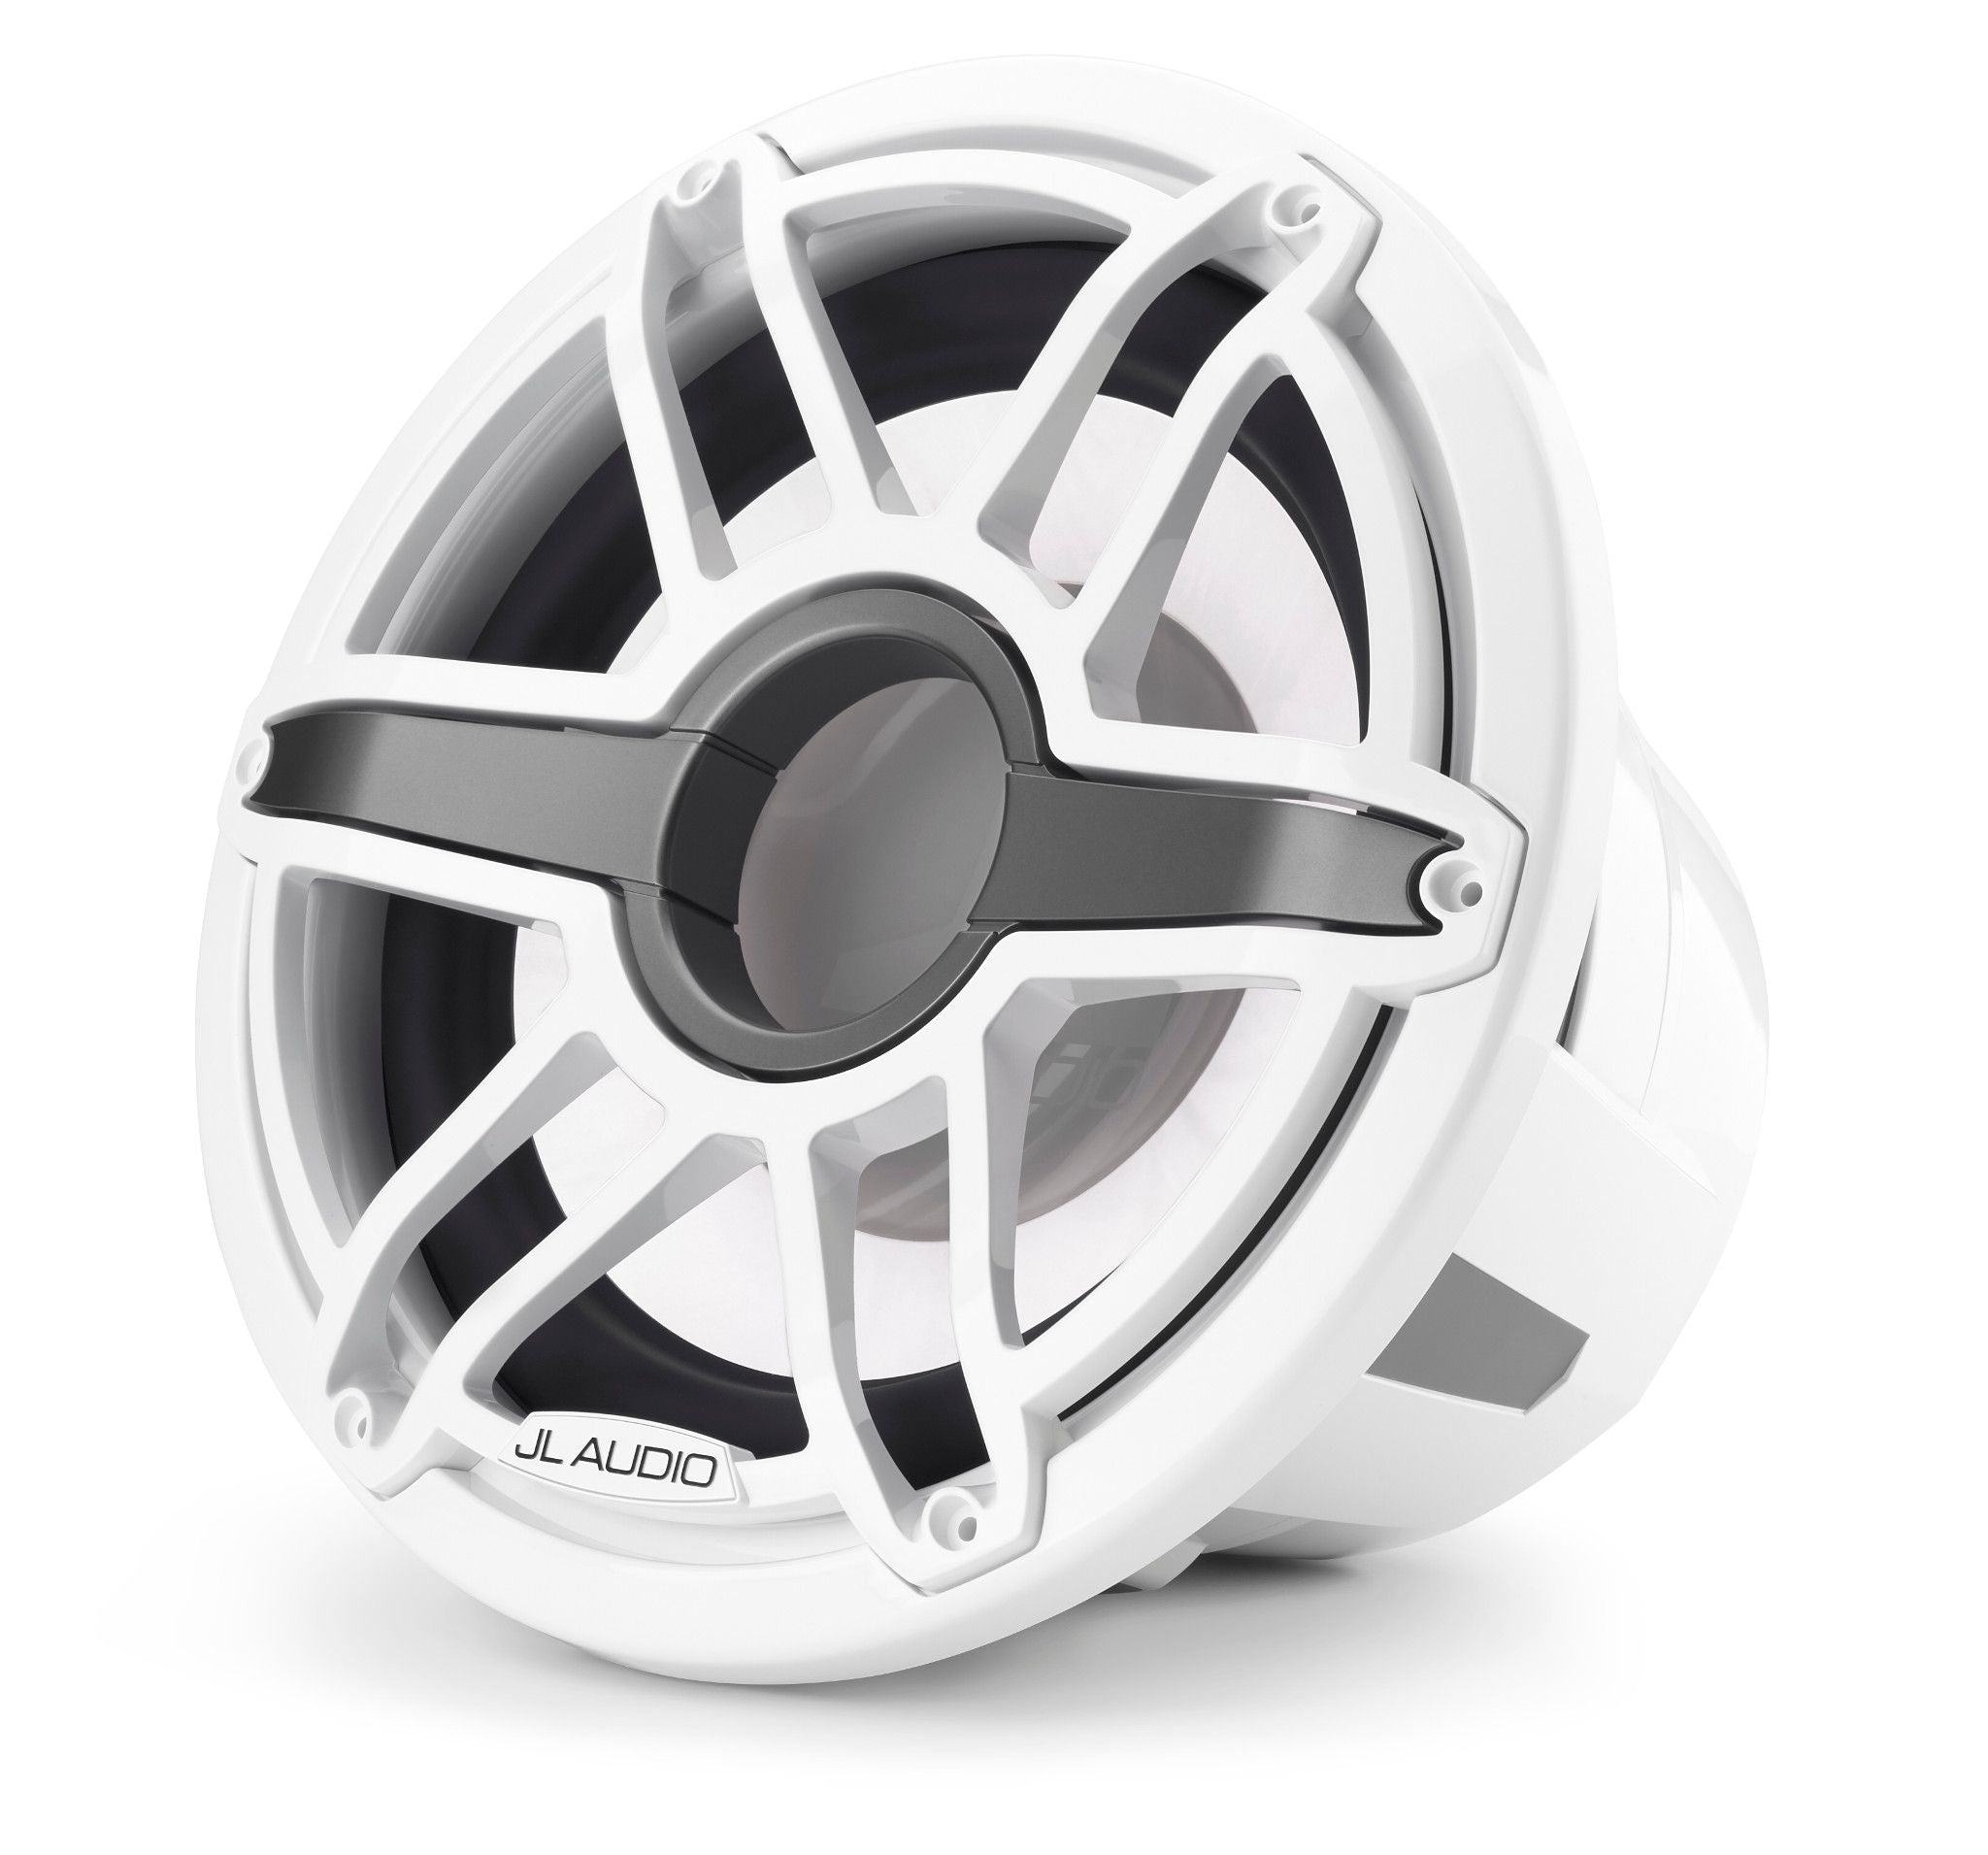 Front of M7-12IB-S-GwGw-i-4 Marine Subwoofer Facing Left Lit in White